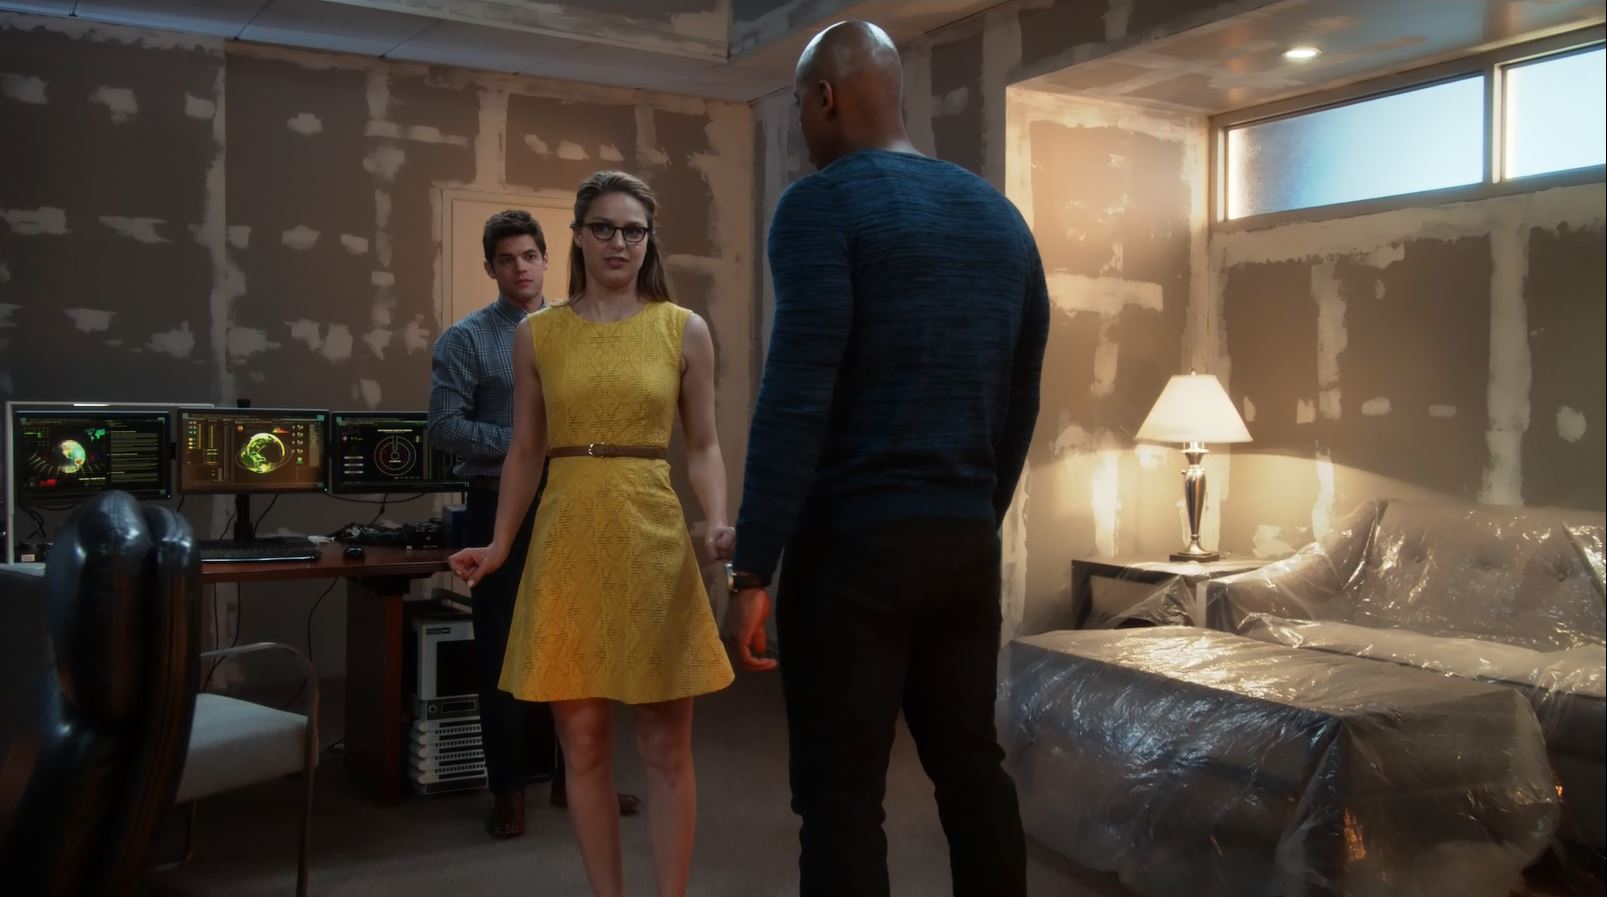 Kara in yellow dress. Supergirl.